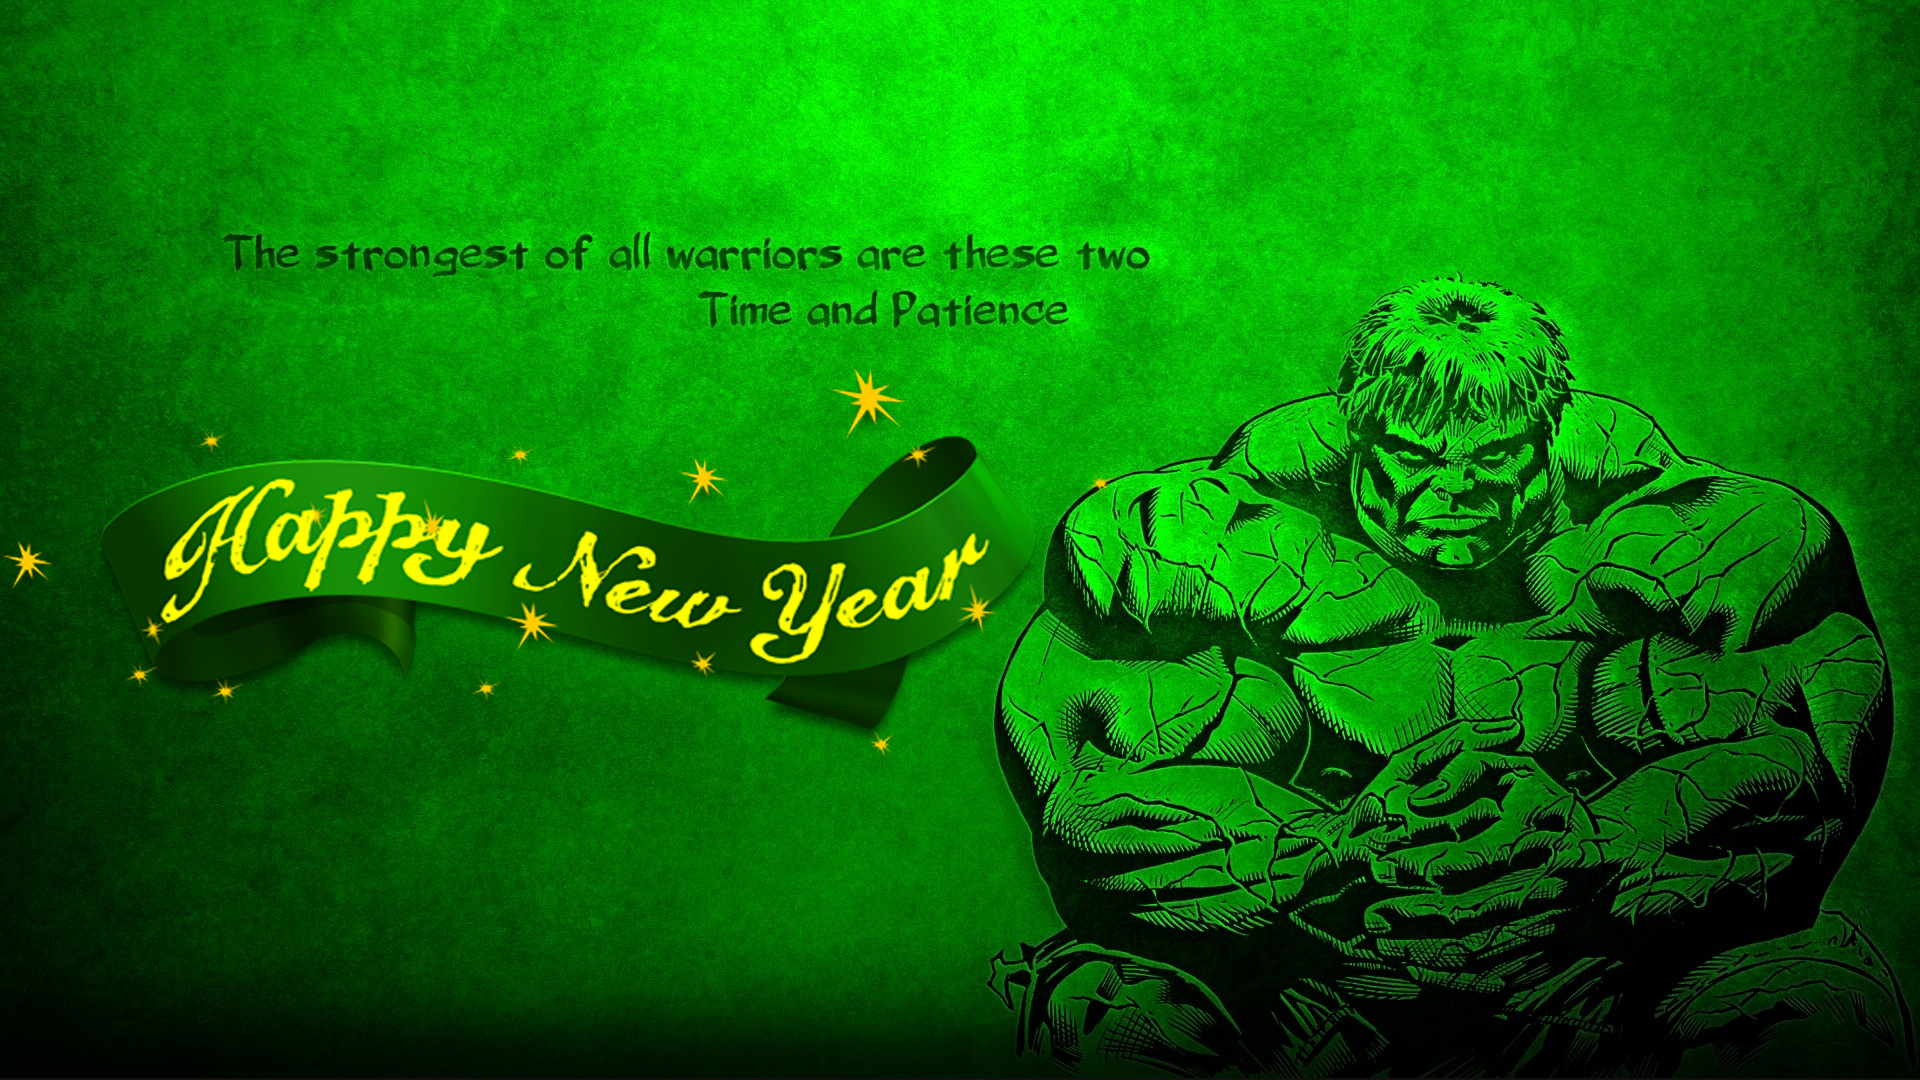 happy new year incredible strongest warrior hulk quotes marvel avenger hd wallpaper